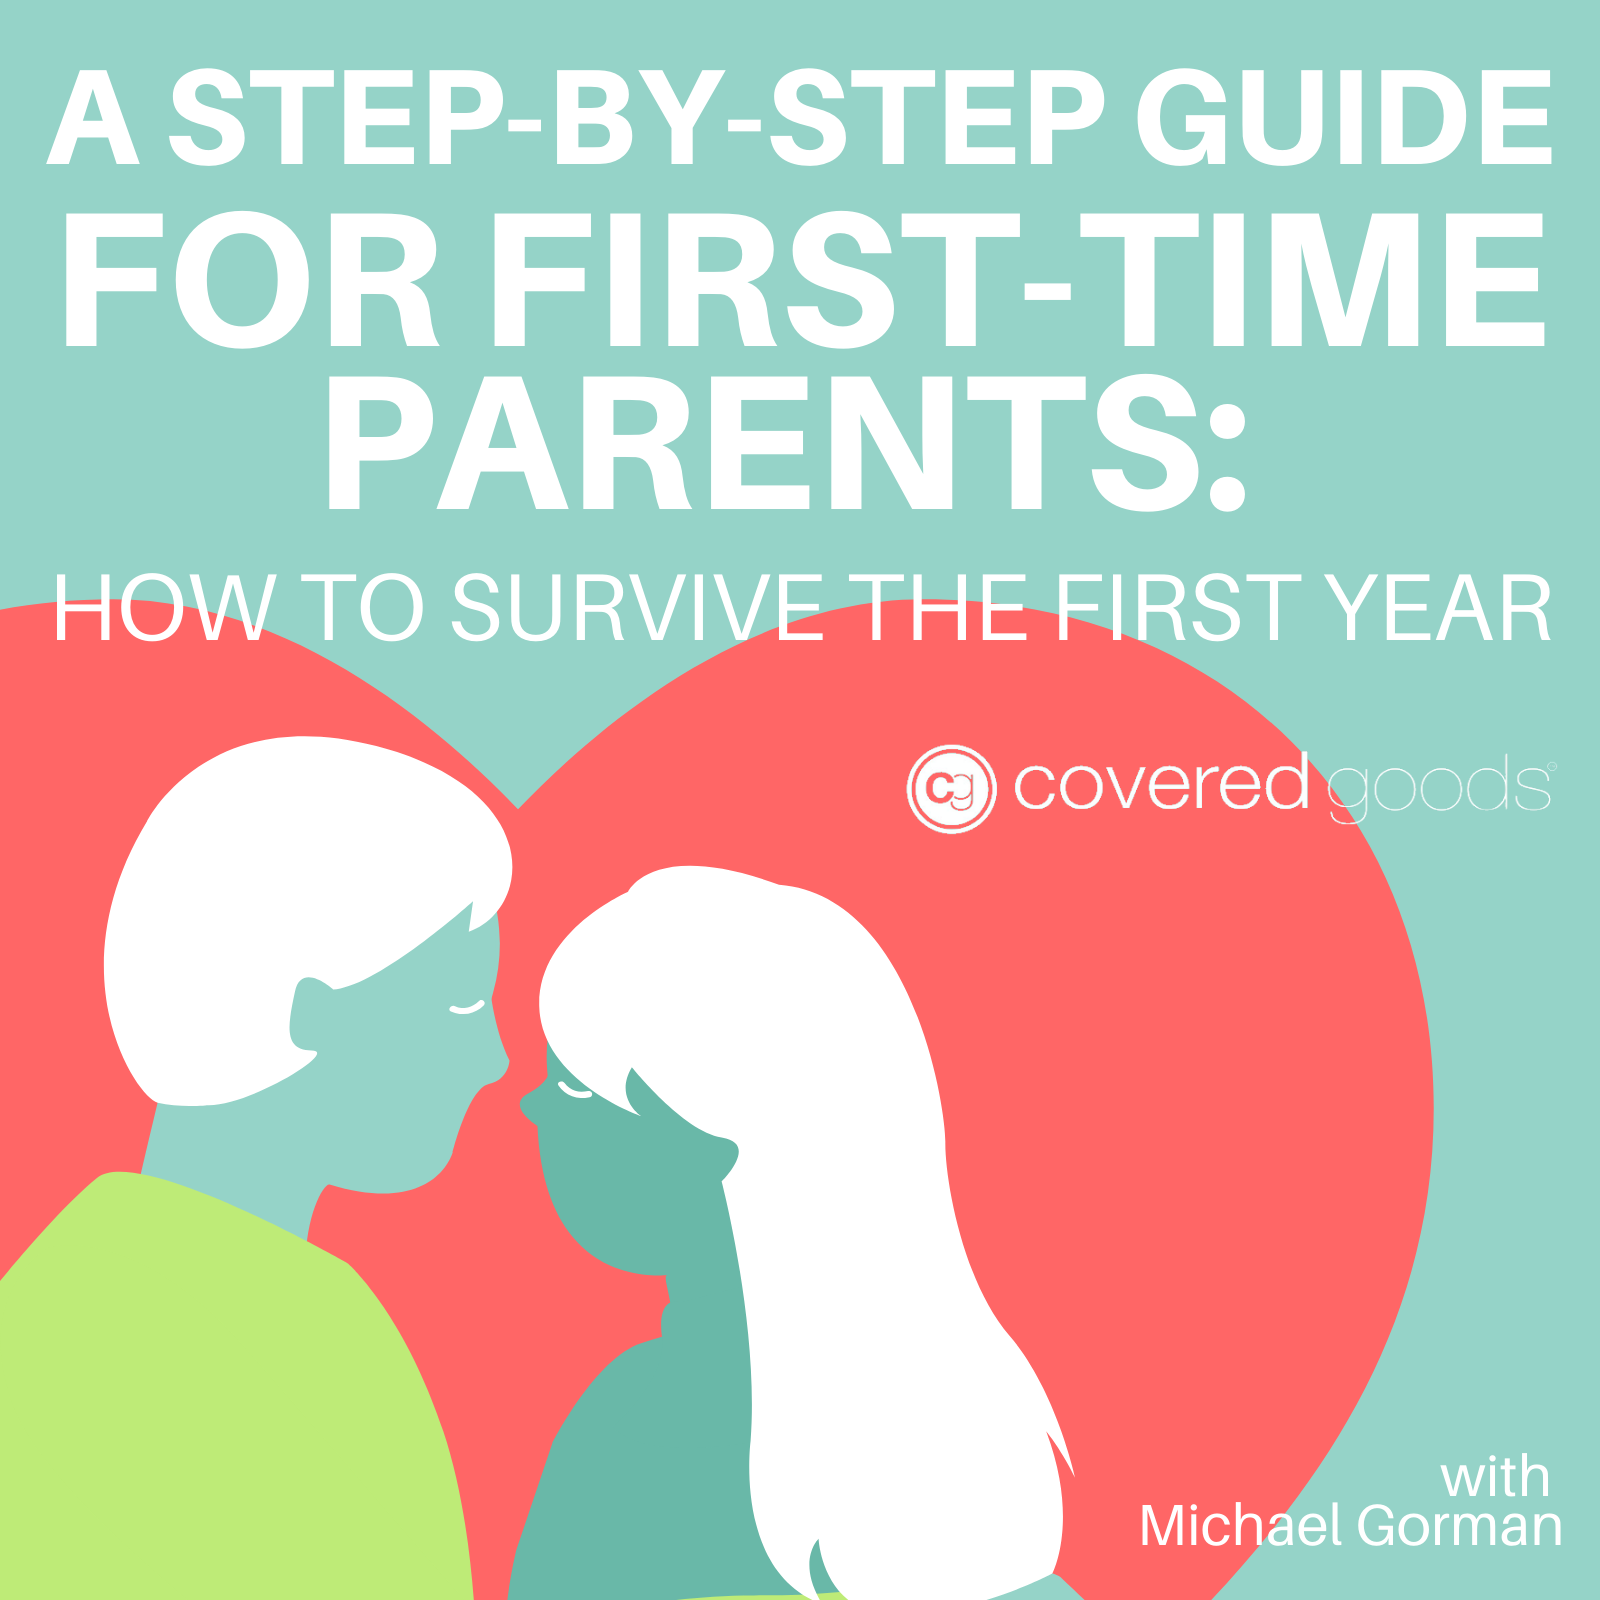 A Step-By-Step Guide for First-Time Parents: How to Survive the First Year